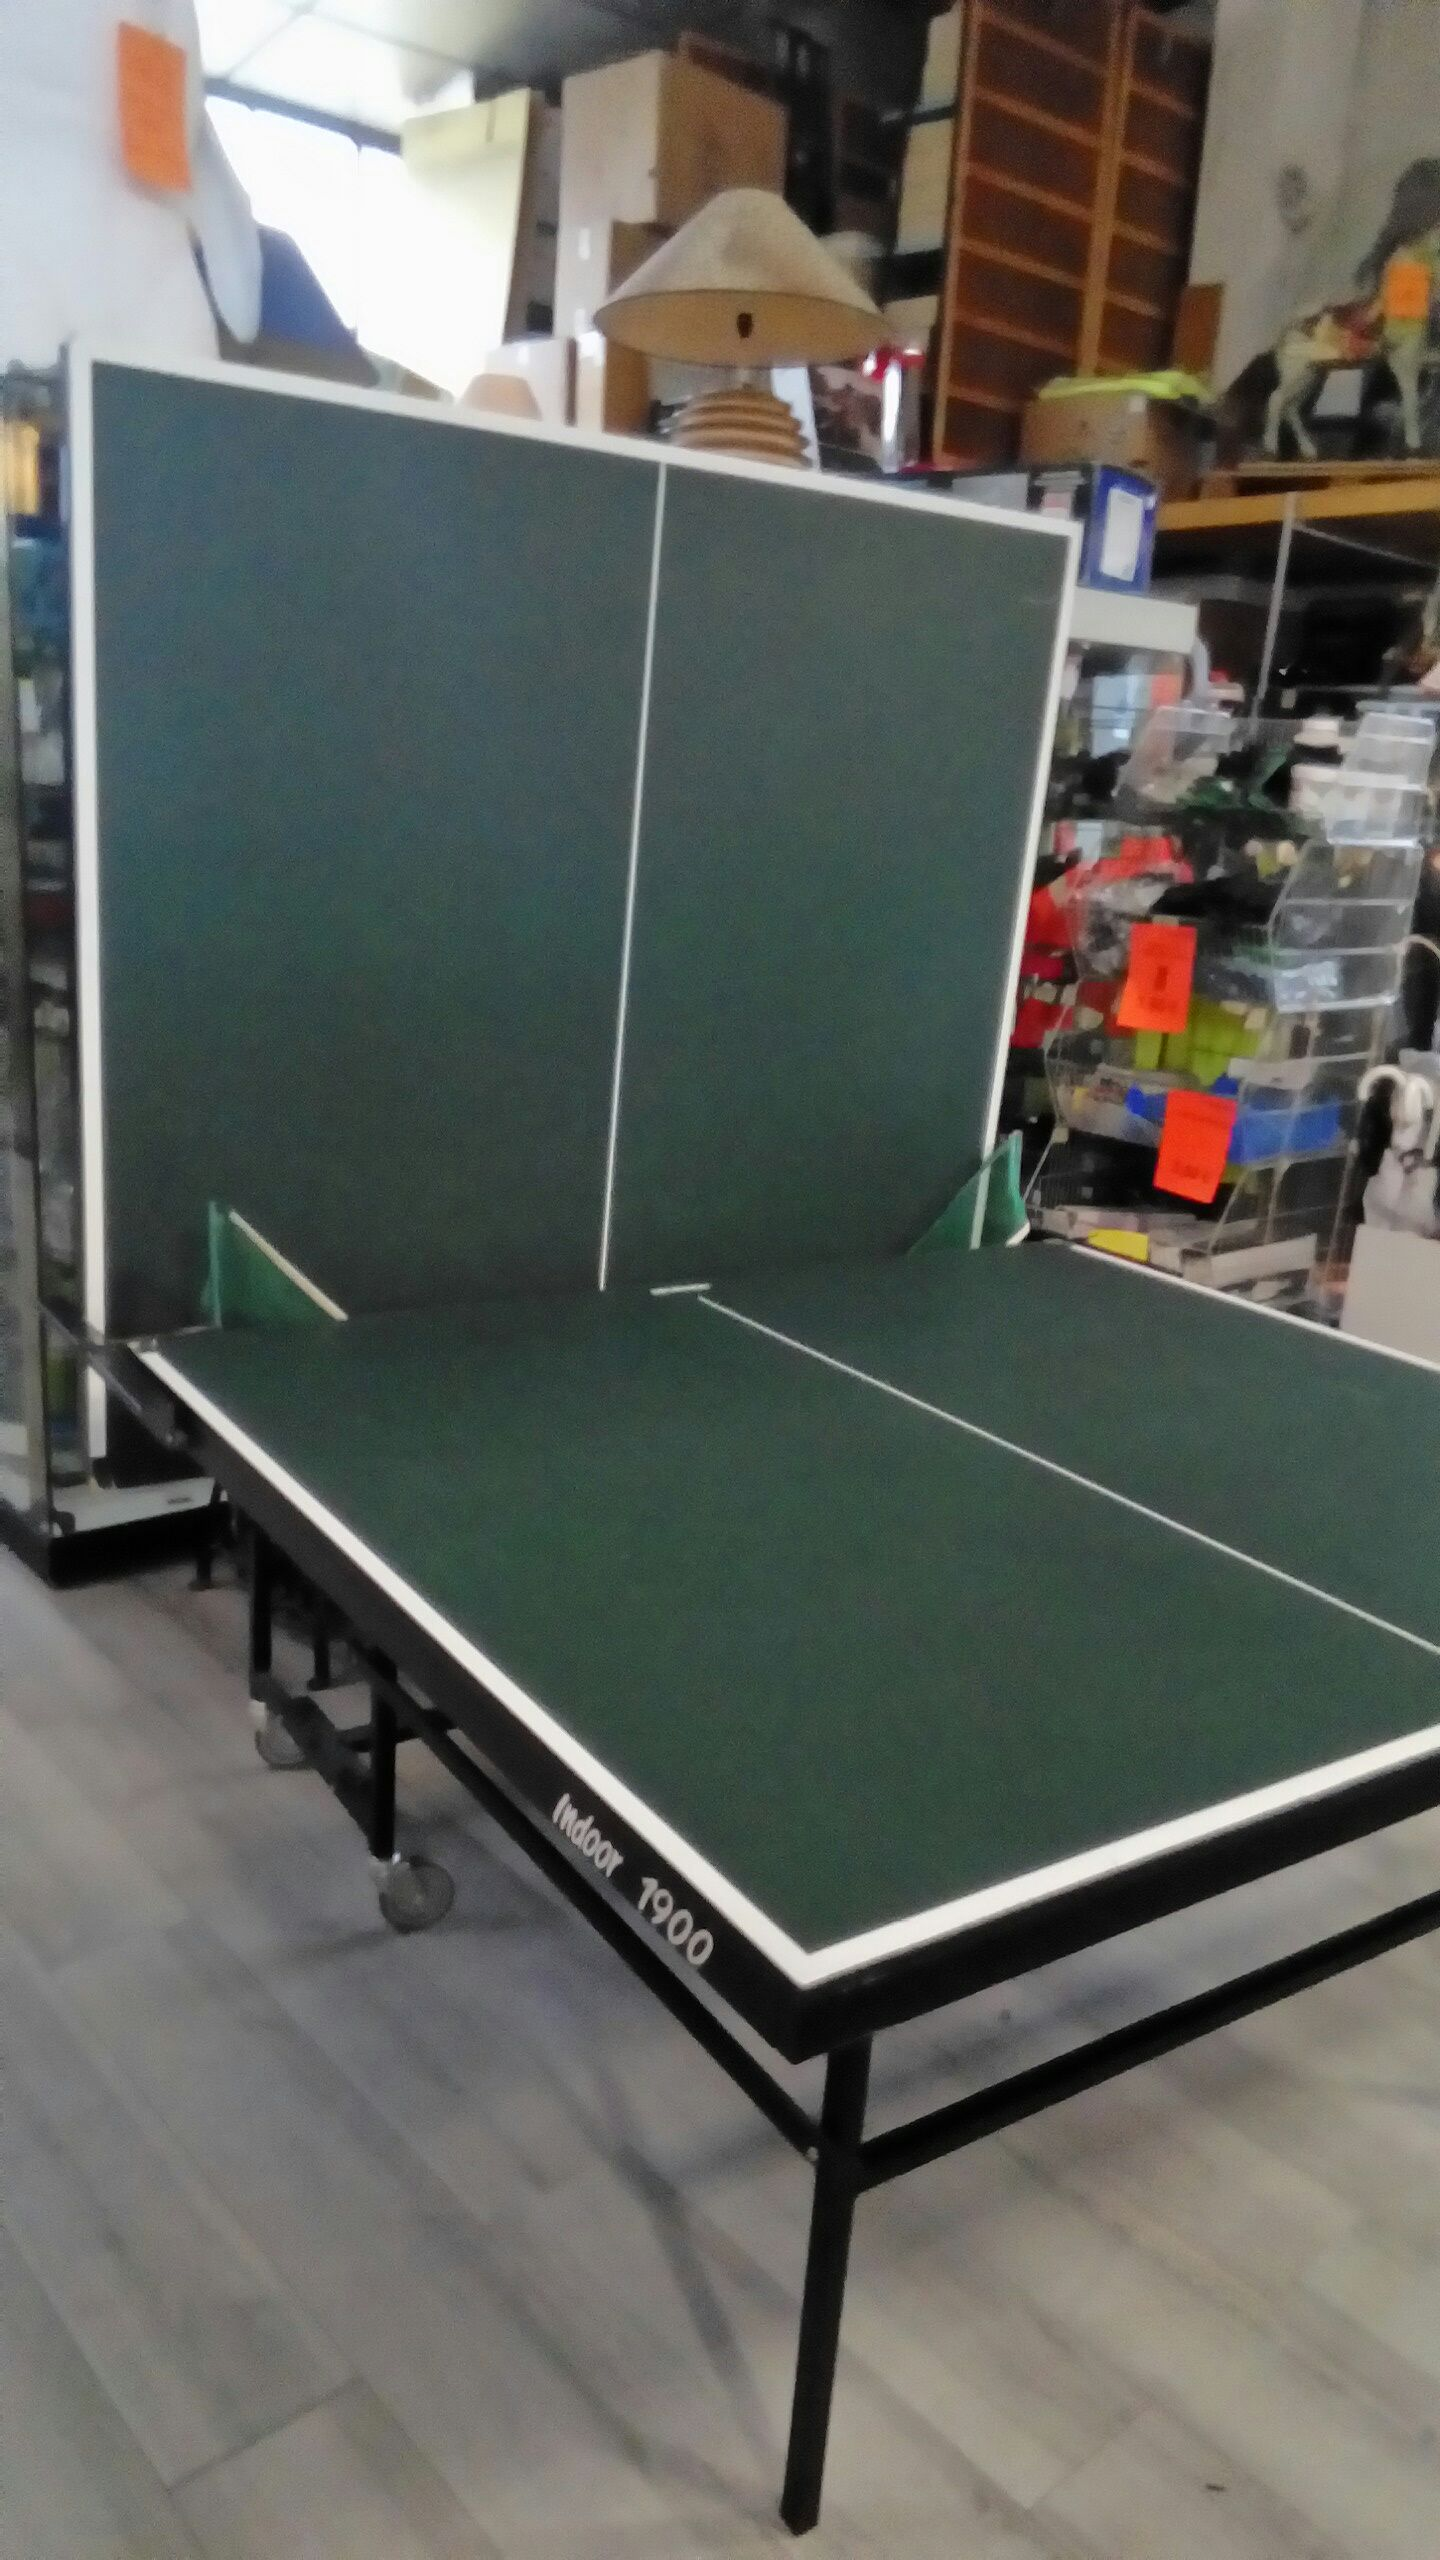 Table de ping pong int rieur decathlon occasion troc - Table de ping pong decathlon occasion ...